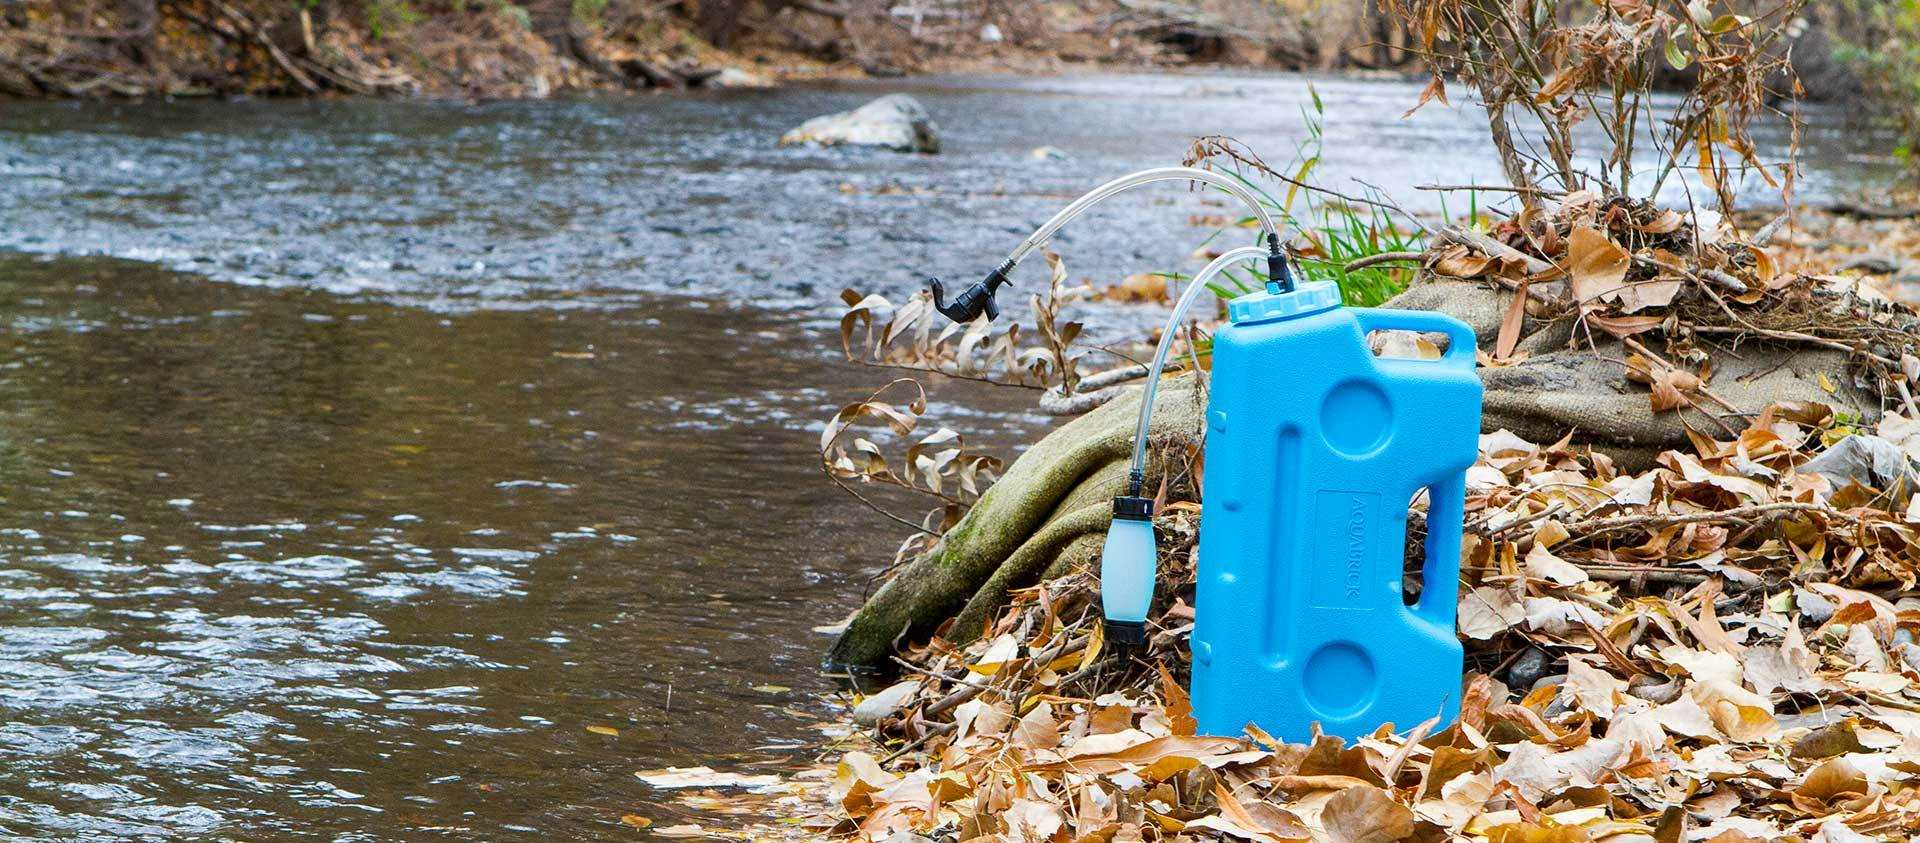 LifeStraw: A Water Filter Straw